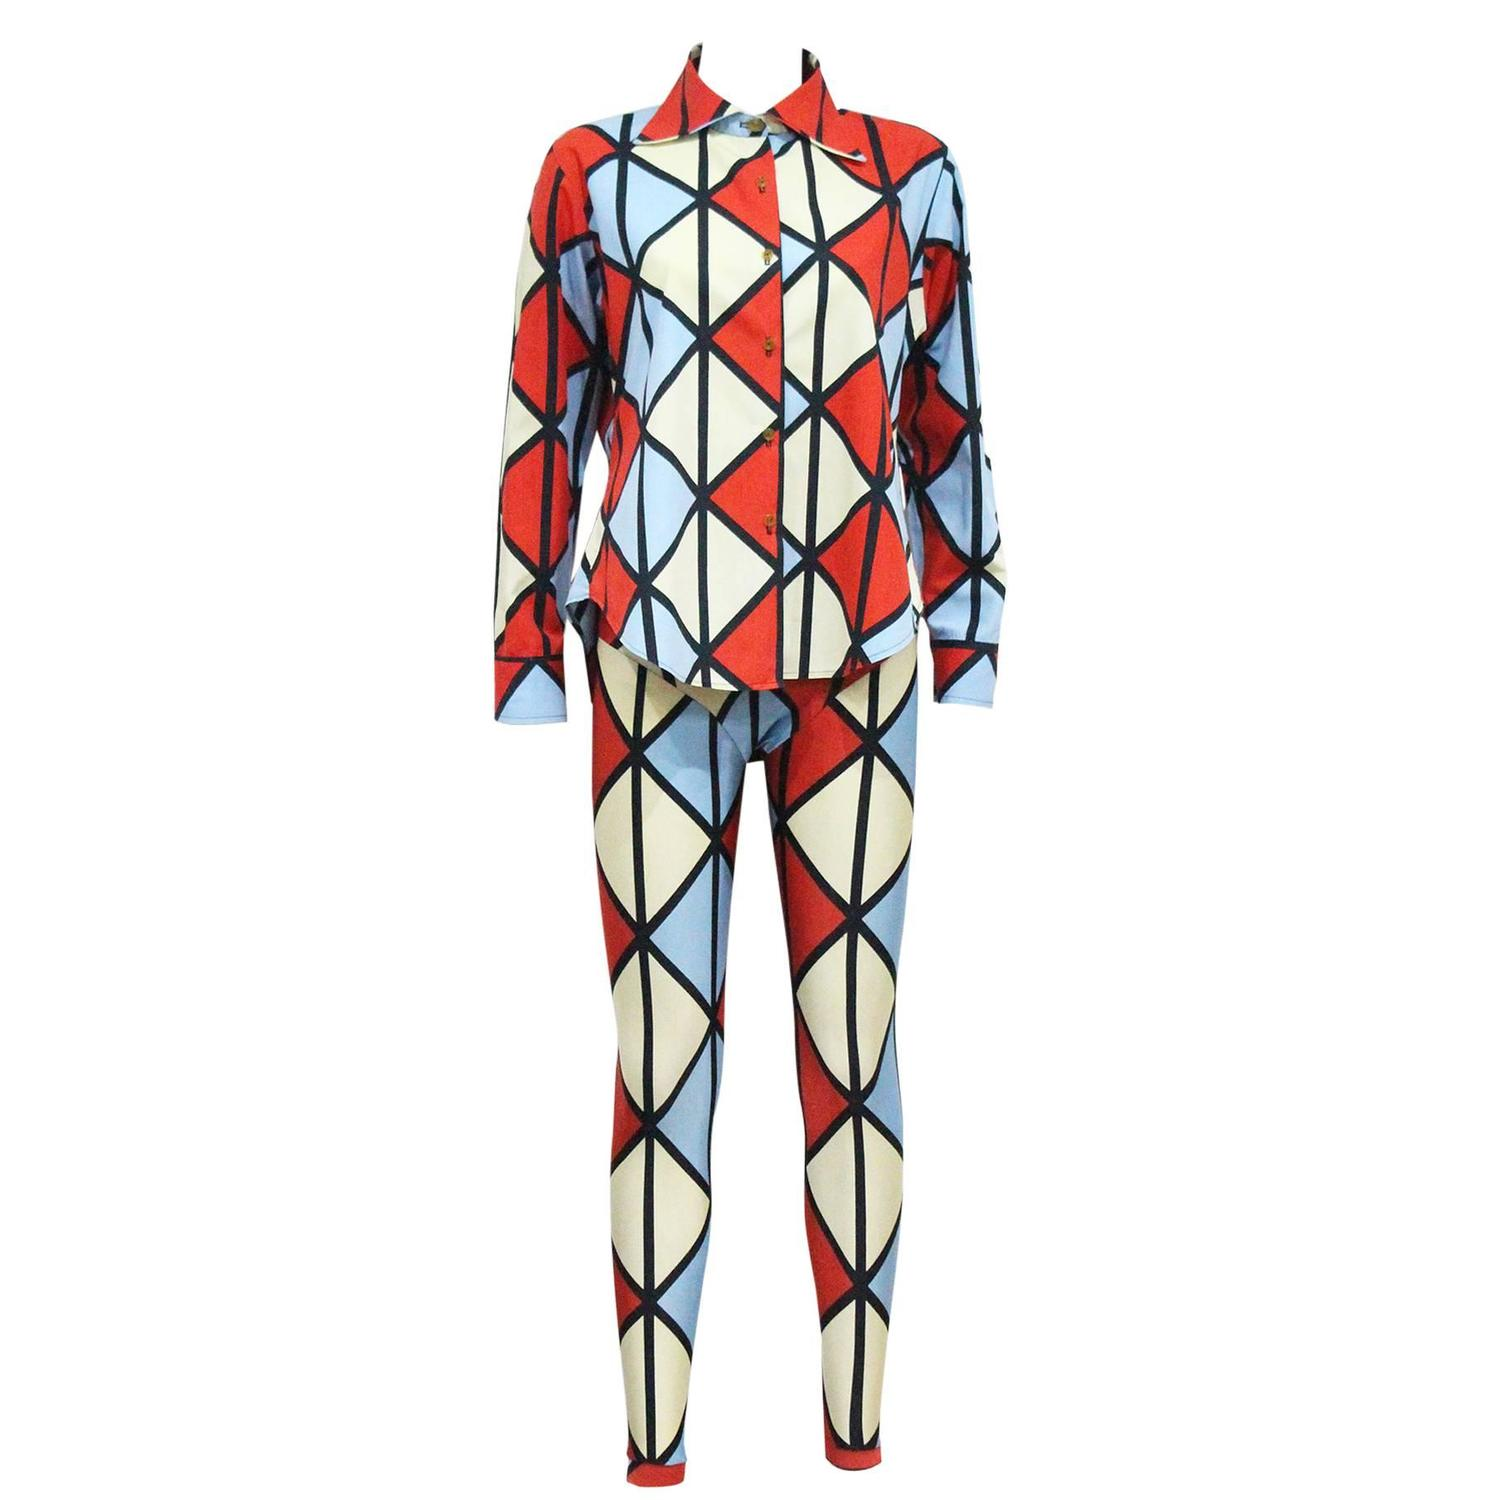 Vivienne westwood harlequin 39 voyage to cythera 39 ensemble for Ensemble sejour